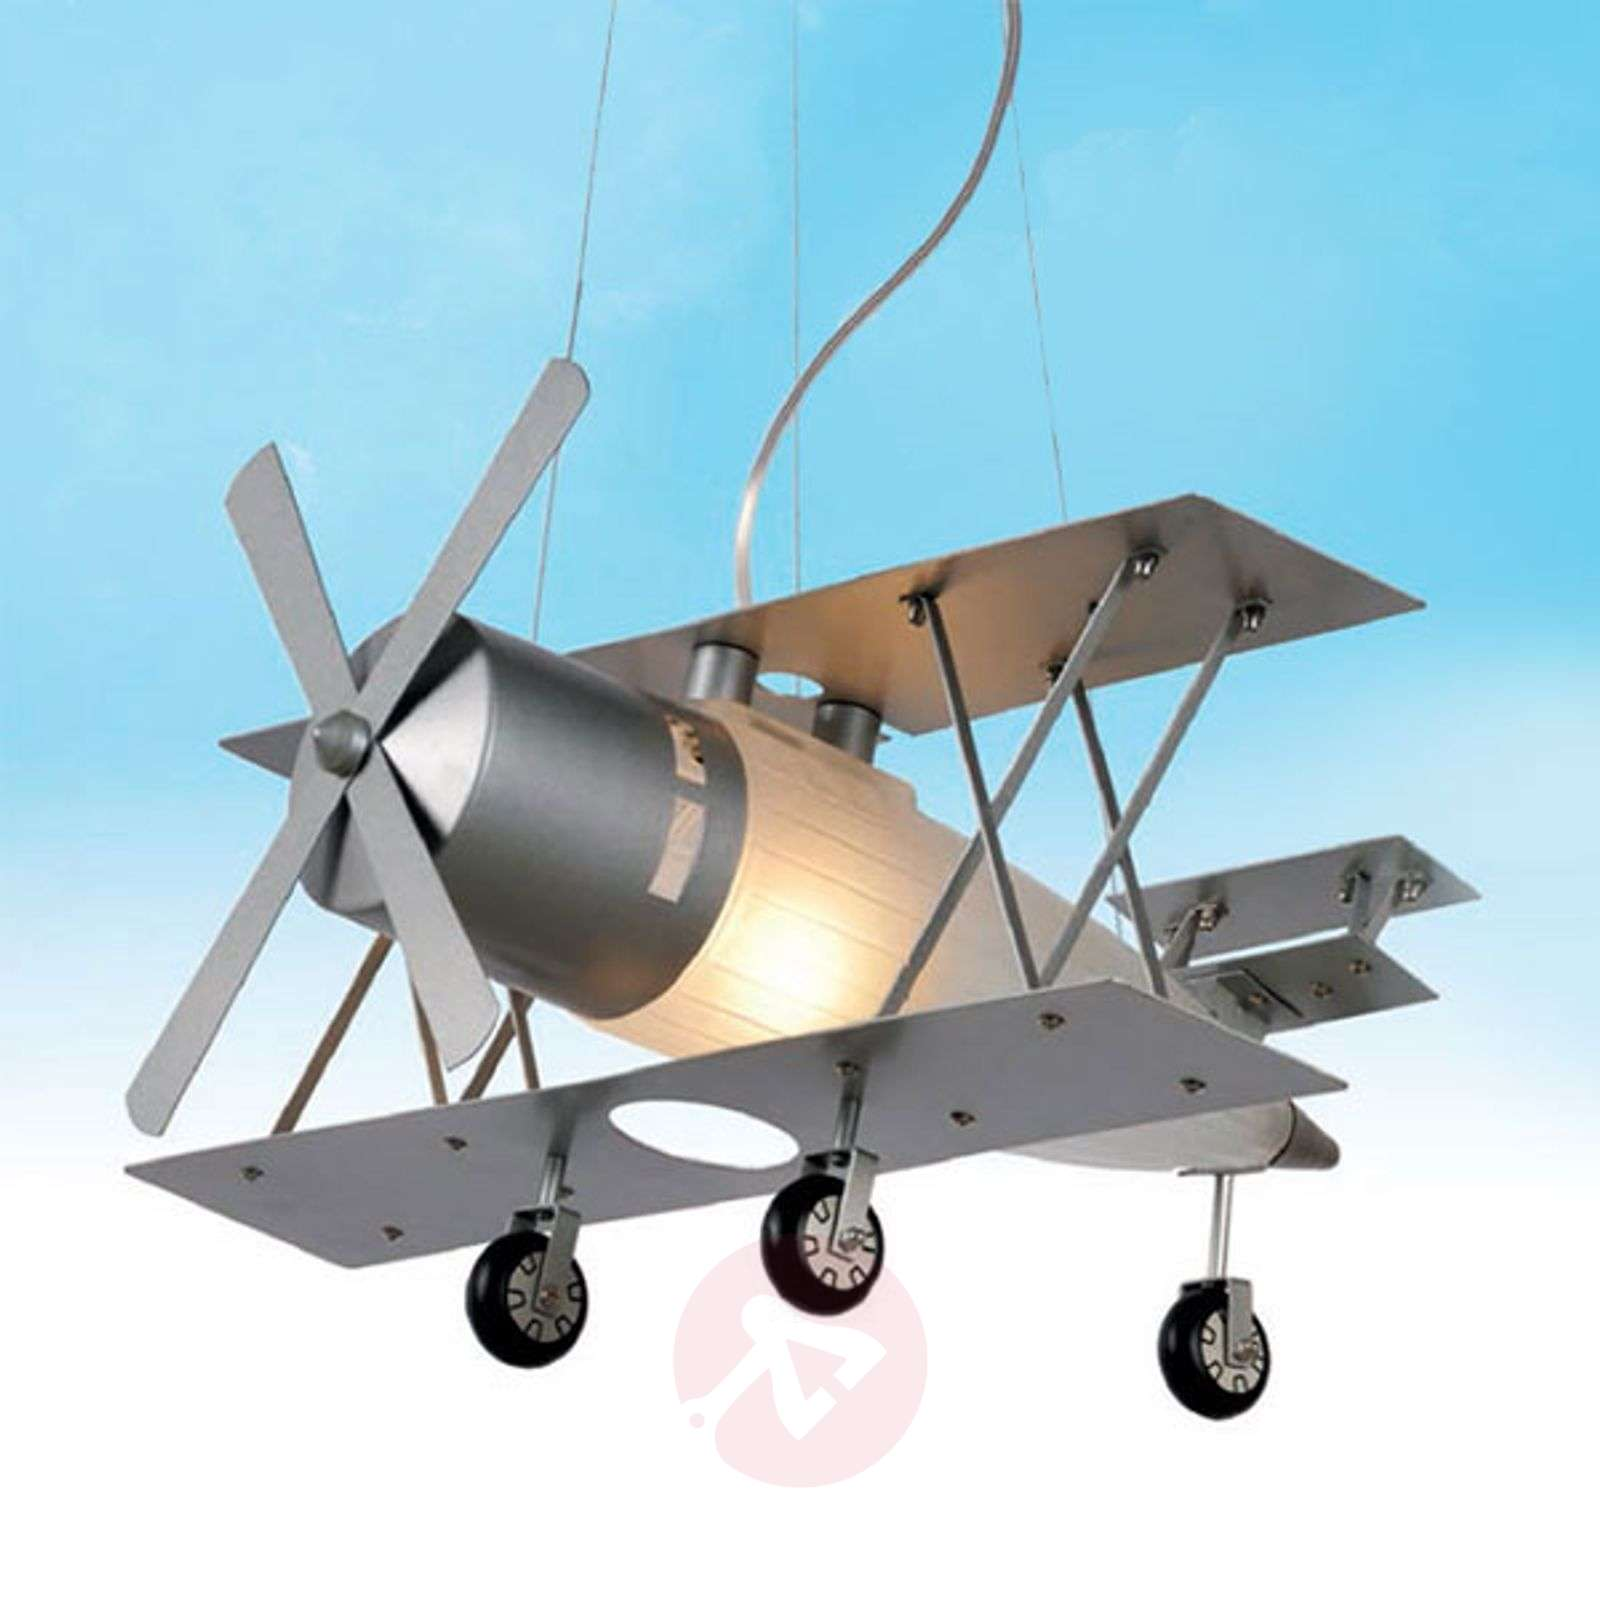 Focker hanging light in an aeroplane design-6054790-01